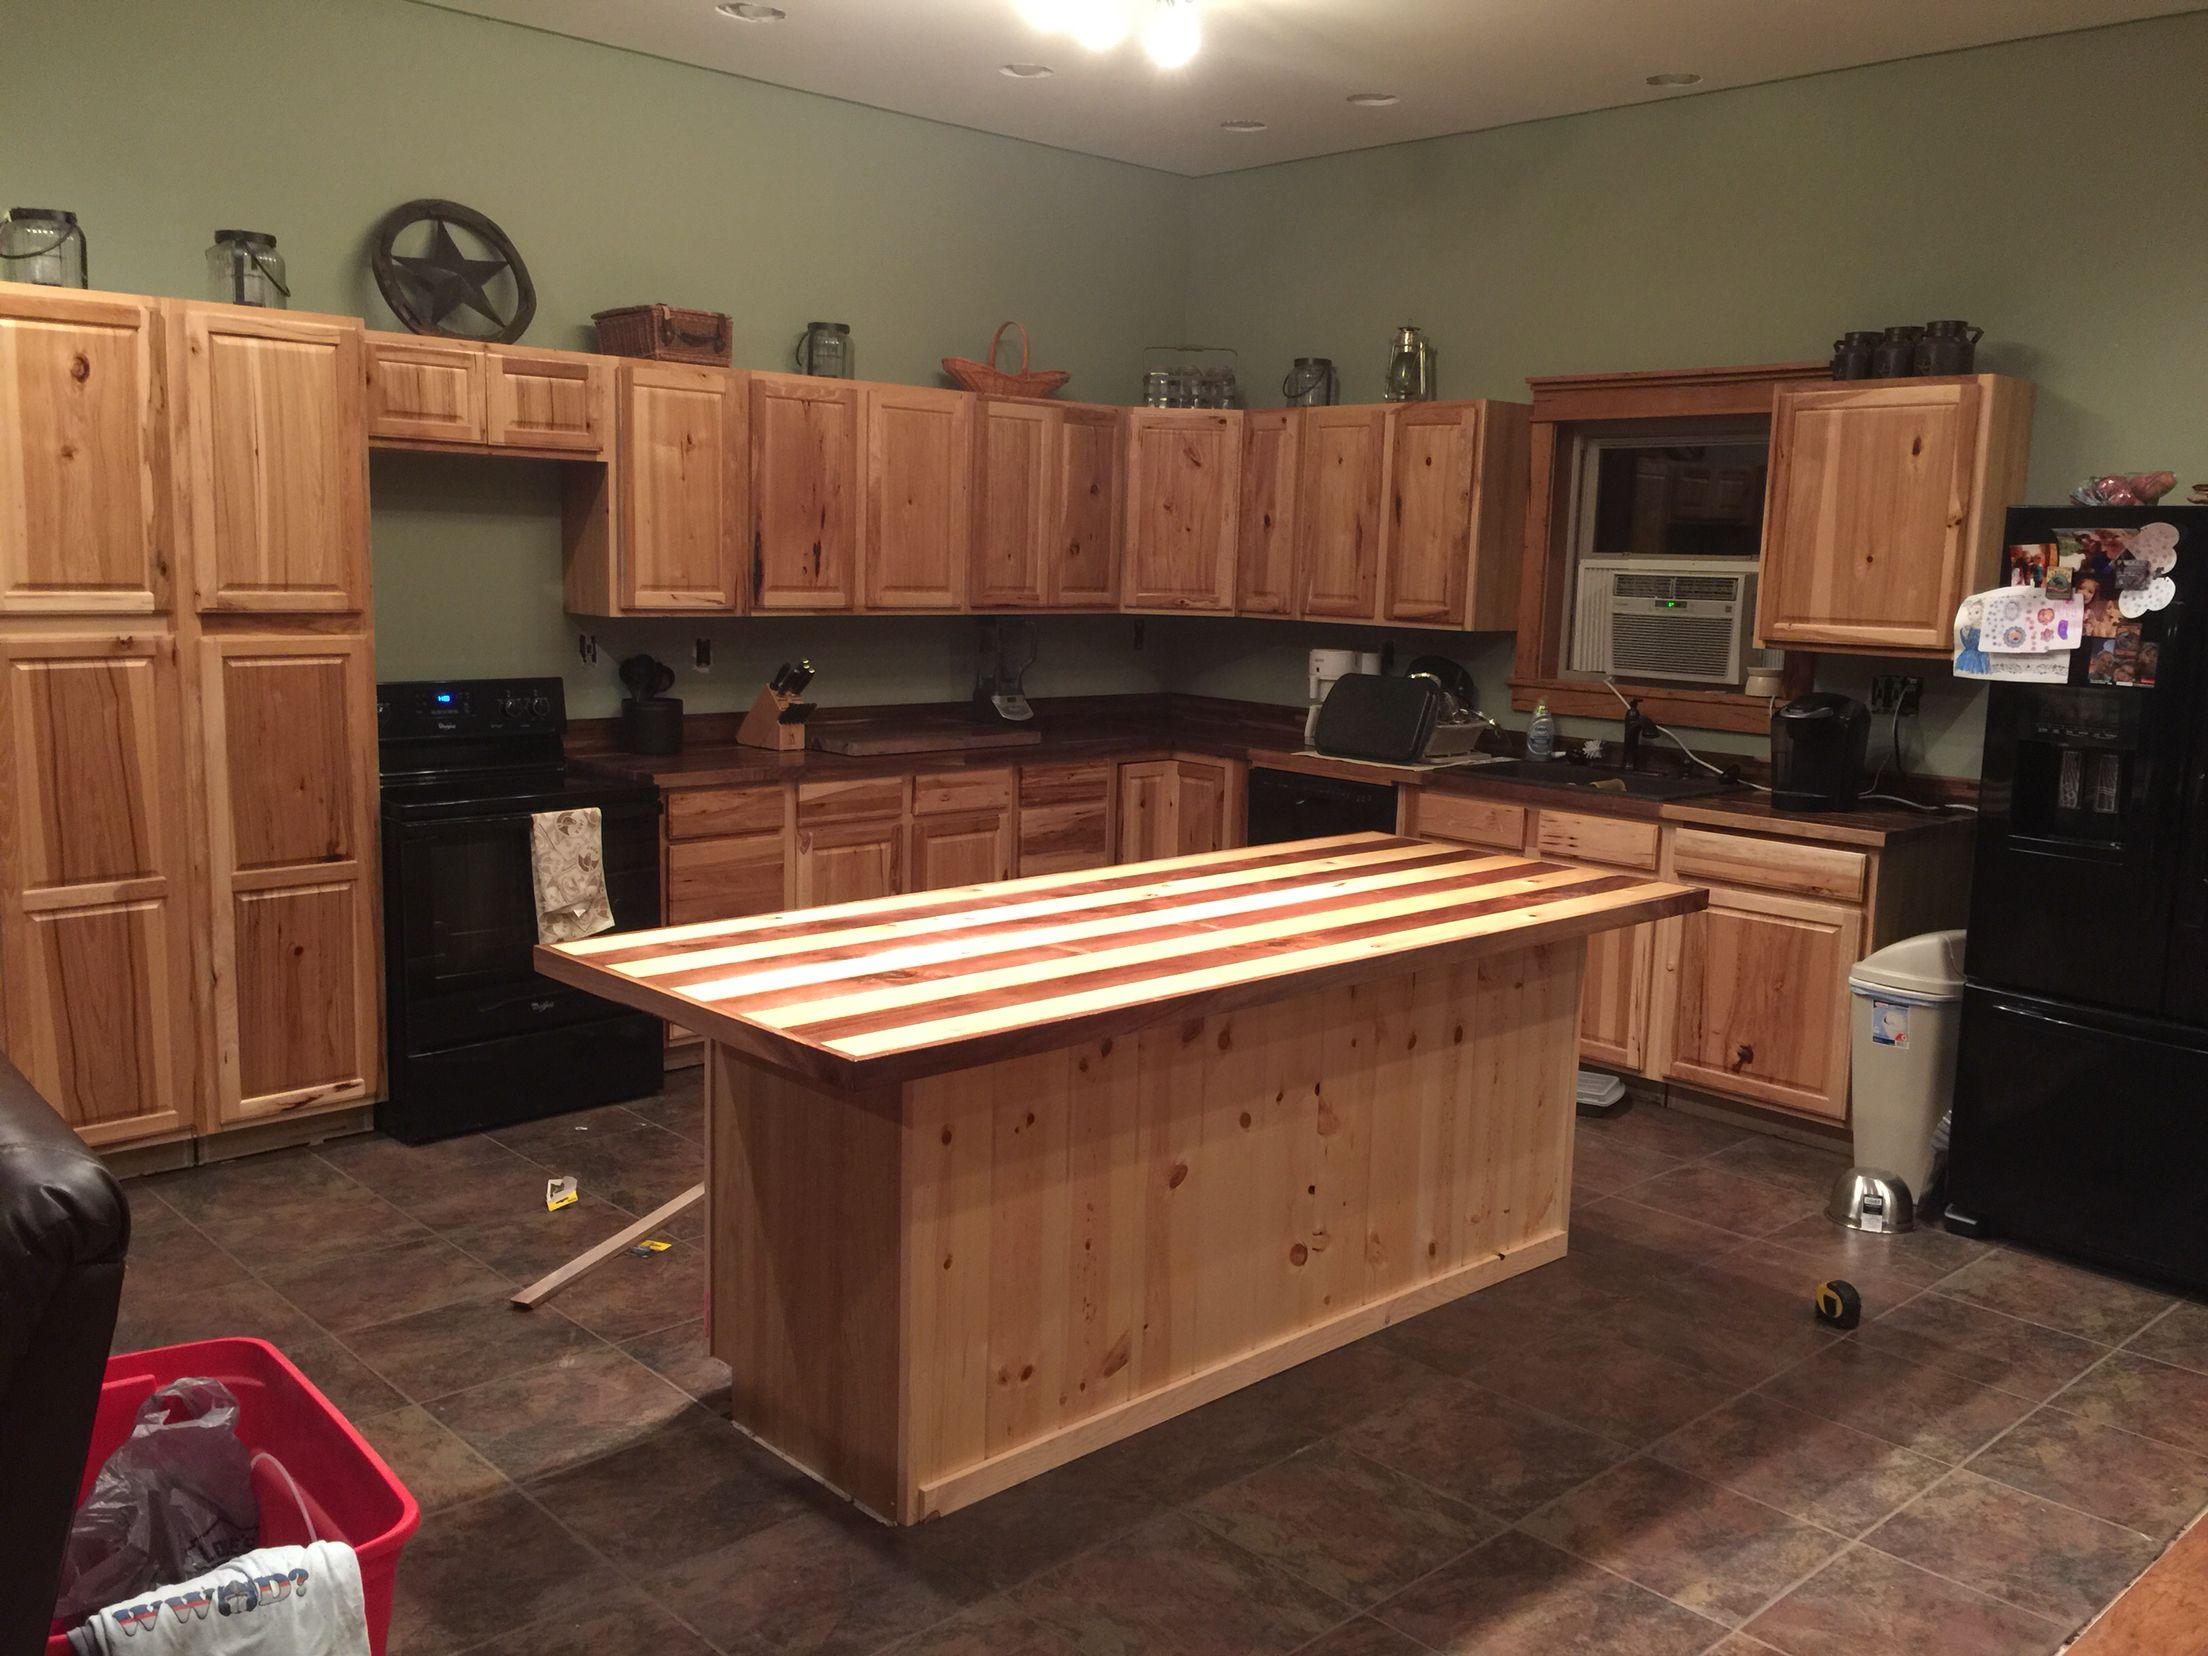 Kitchen overview; Hickory from Lowes, Walnut